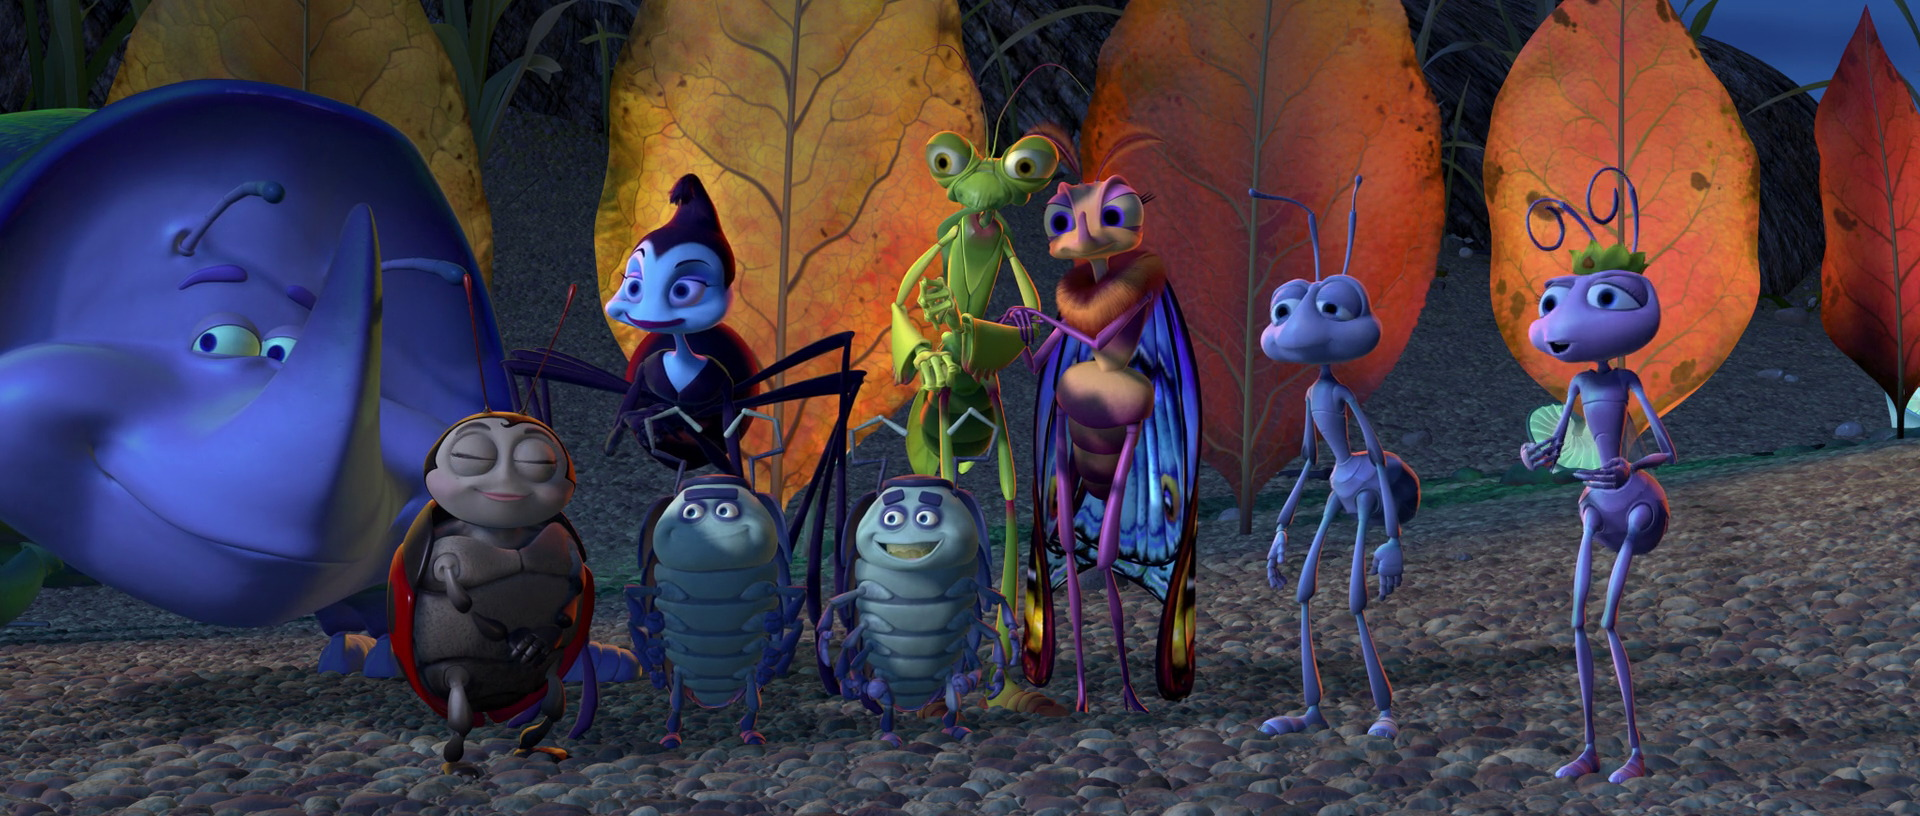 People Think A Bug S Life Could Be Getting A Sequel After This Hint Her Ie